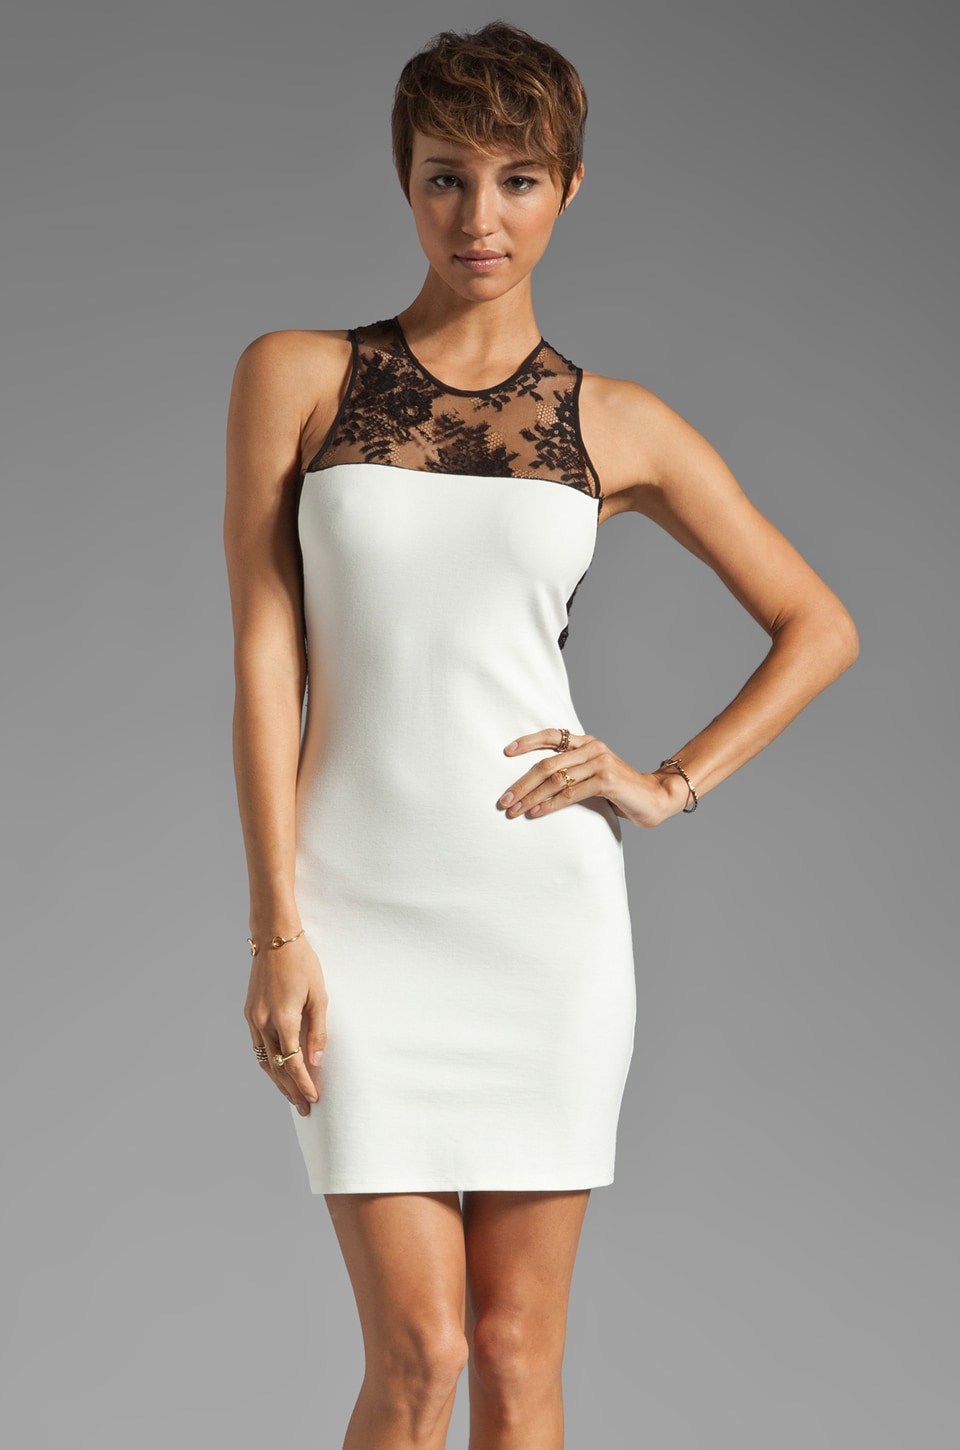 Mason by Michelle Mason Lace Inset Dress in White